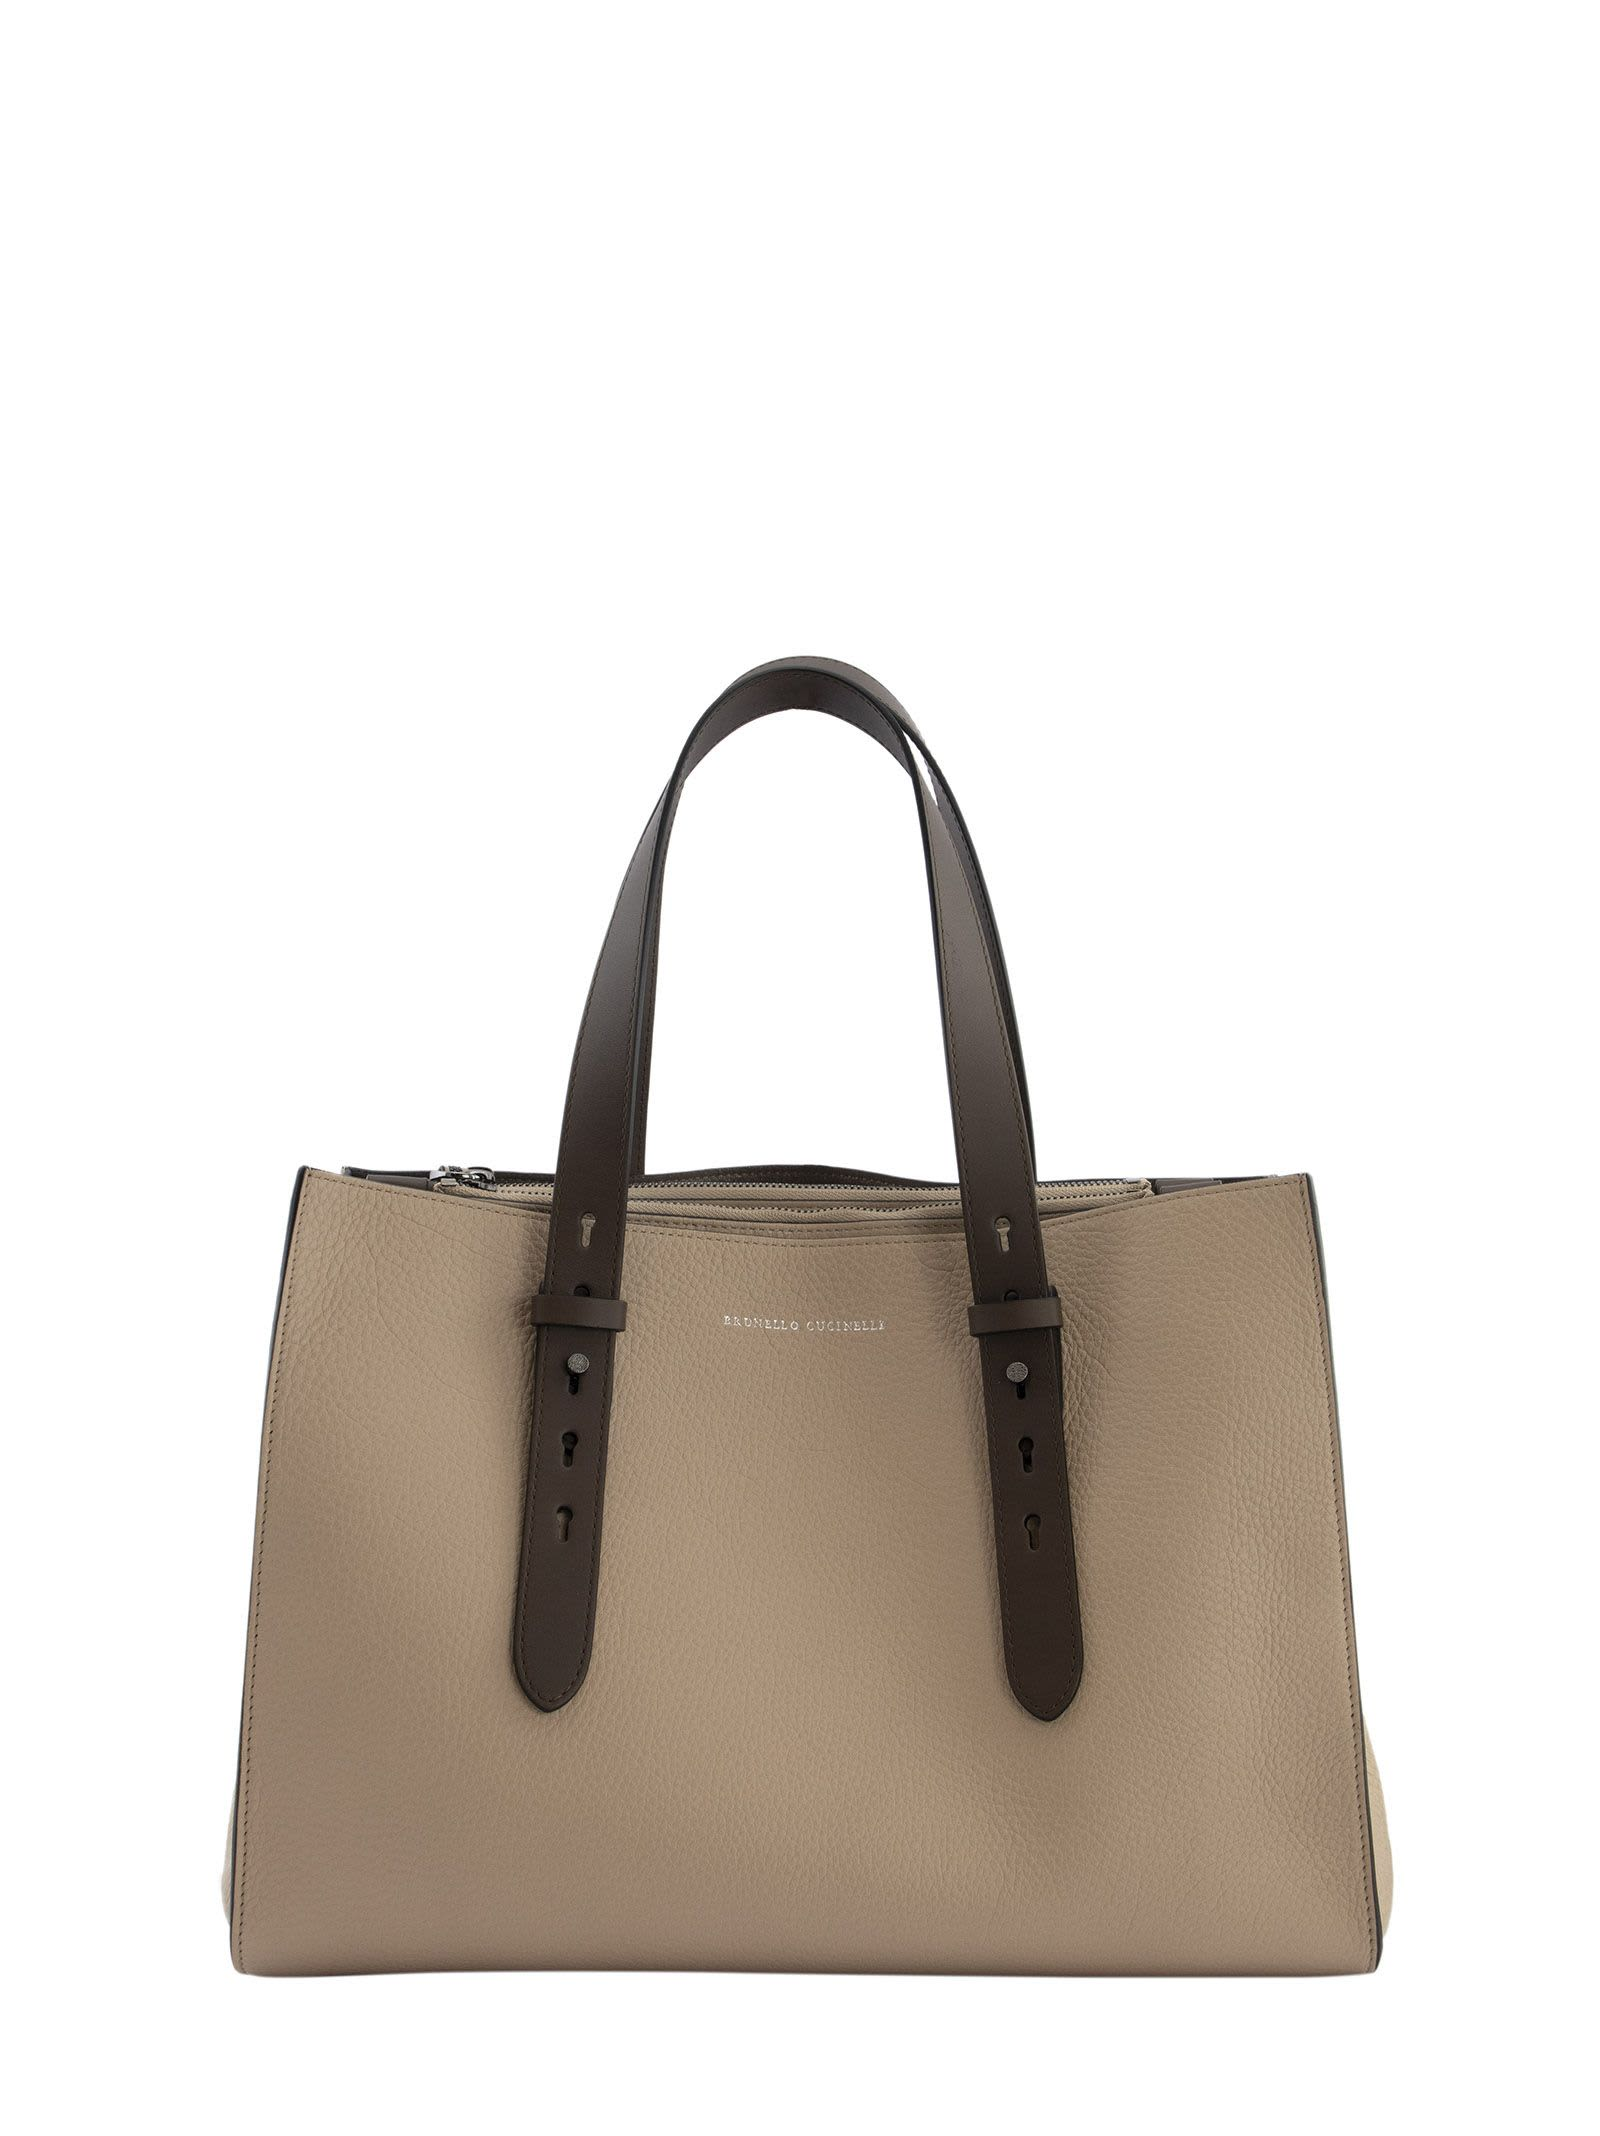 Brunello Cucinelli SHOPPER BAG TEXTURE CALFSKIN LARGE BAG WITH MONILI